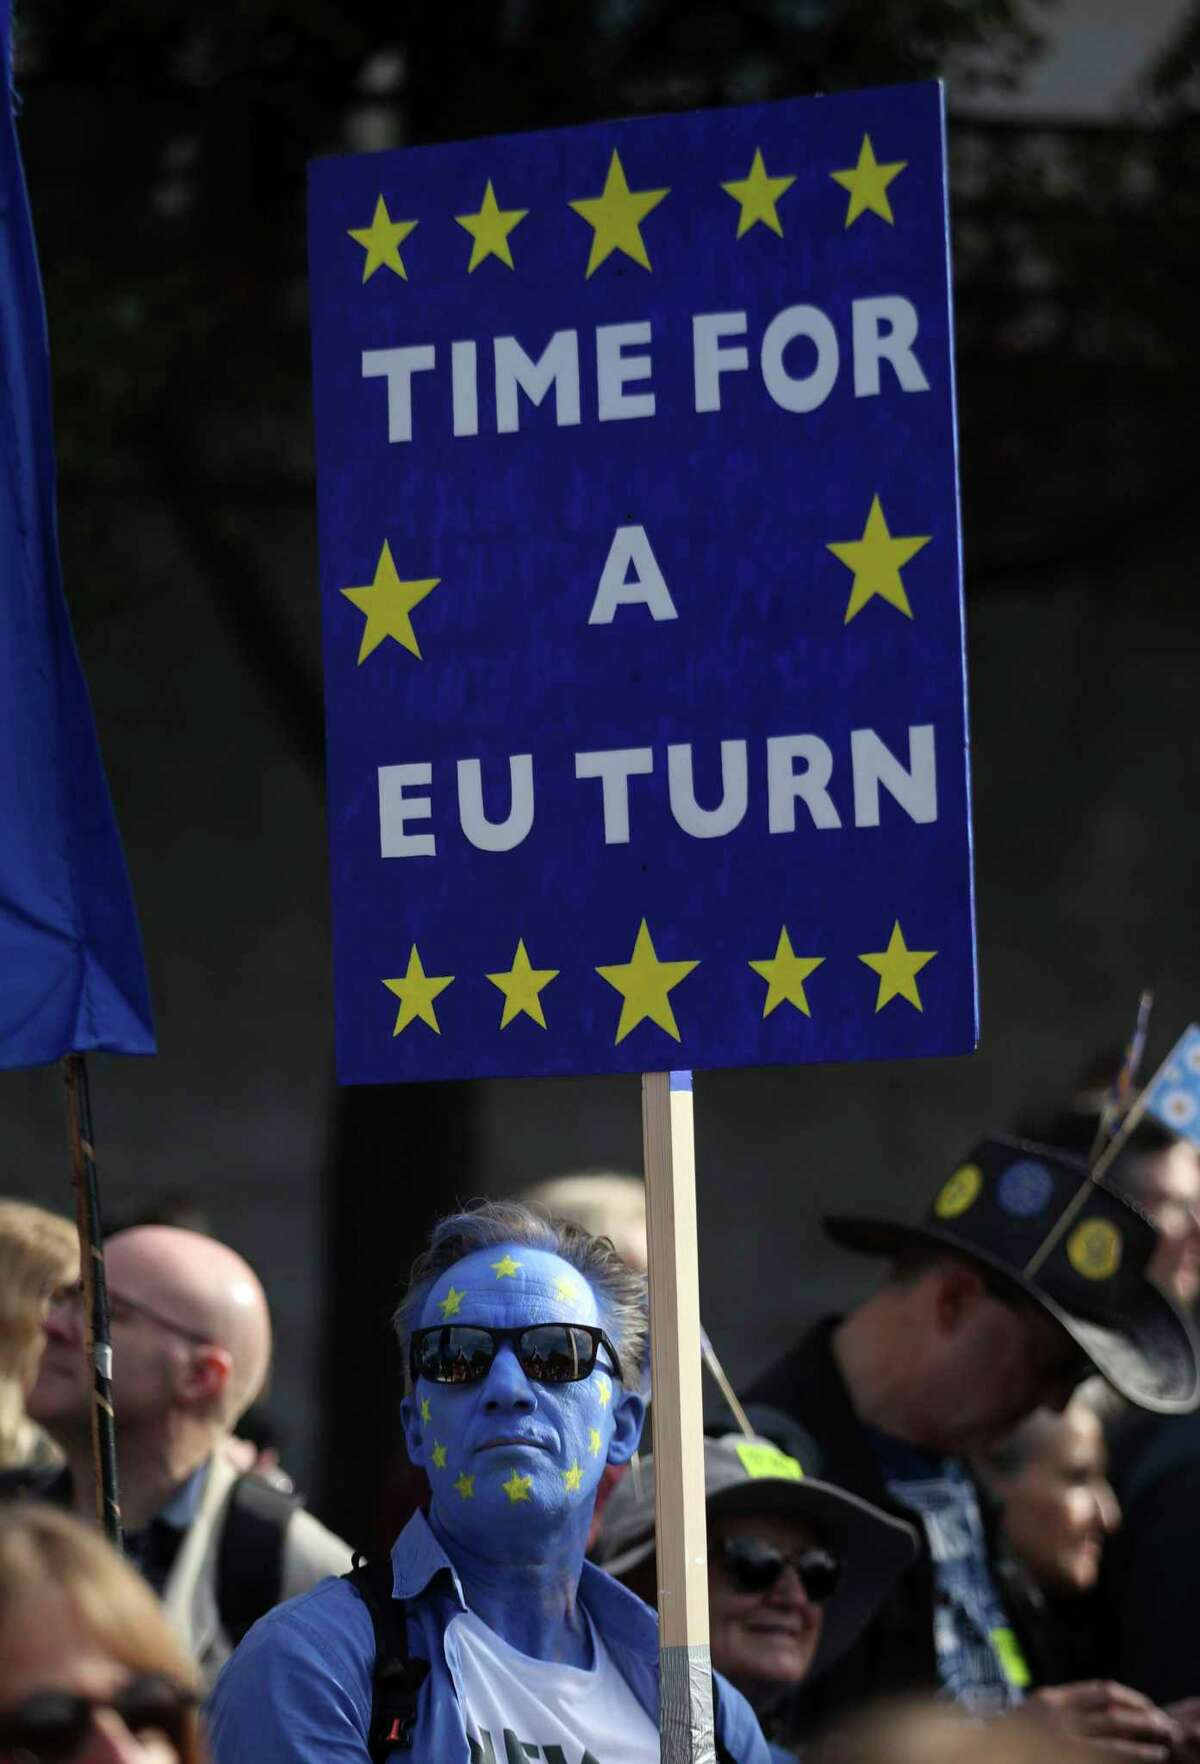 An anti-Brexit campaigner with his face painted in the colours of the European Union flag, during the People's Vote March, in London, Saturday Oct. 20, 2018. Some thousands of protesters are marching through central London, Saturday, to demand a new referendum on Britain?'s Brexit departure from the European Union. (Yui Mok/PA via AP)